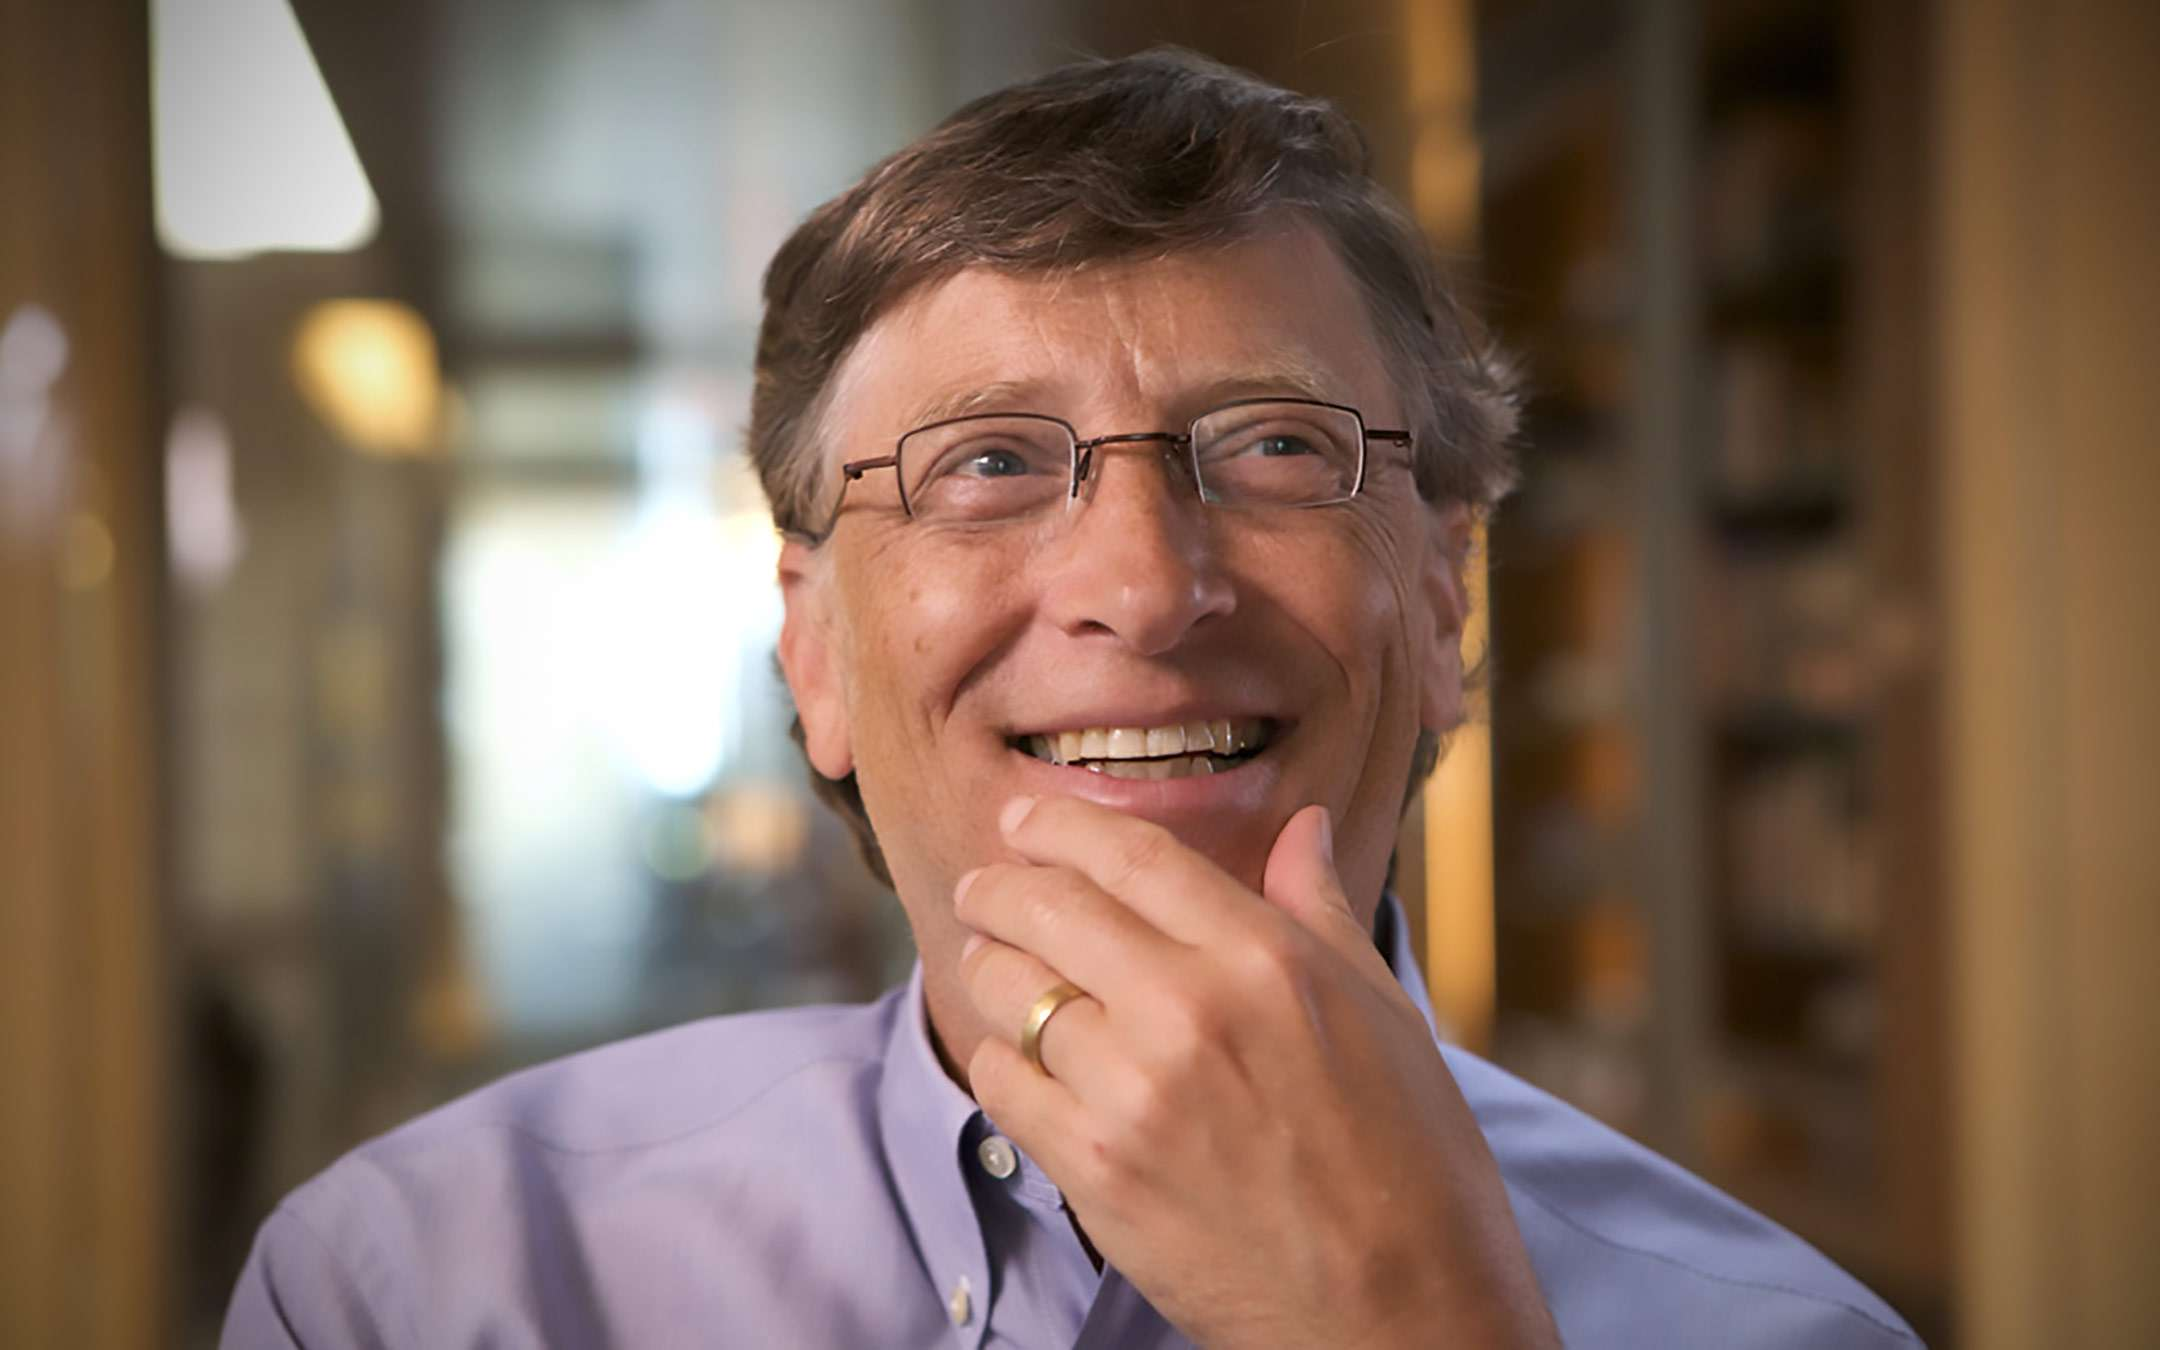 The UK on Bill Gates' COVID-19 vaccines